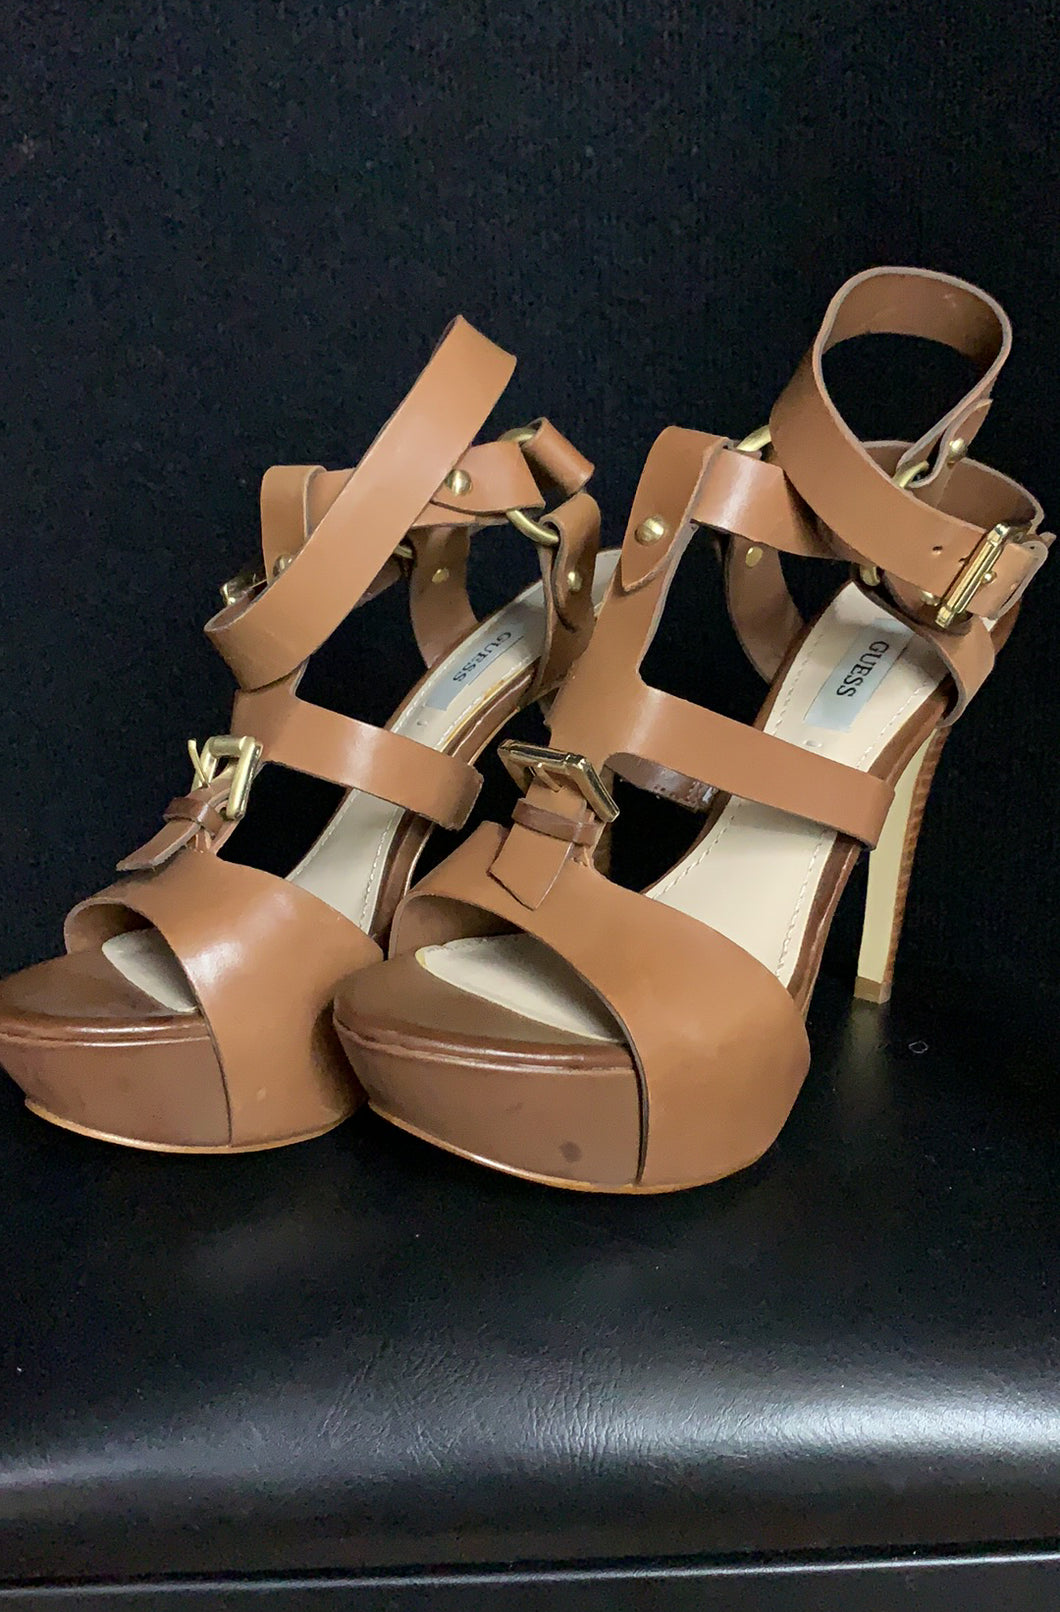 GUESS Strappy Tan Leather Heels size 7.5M